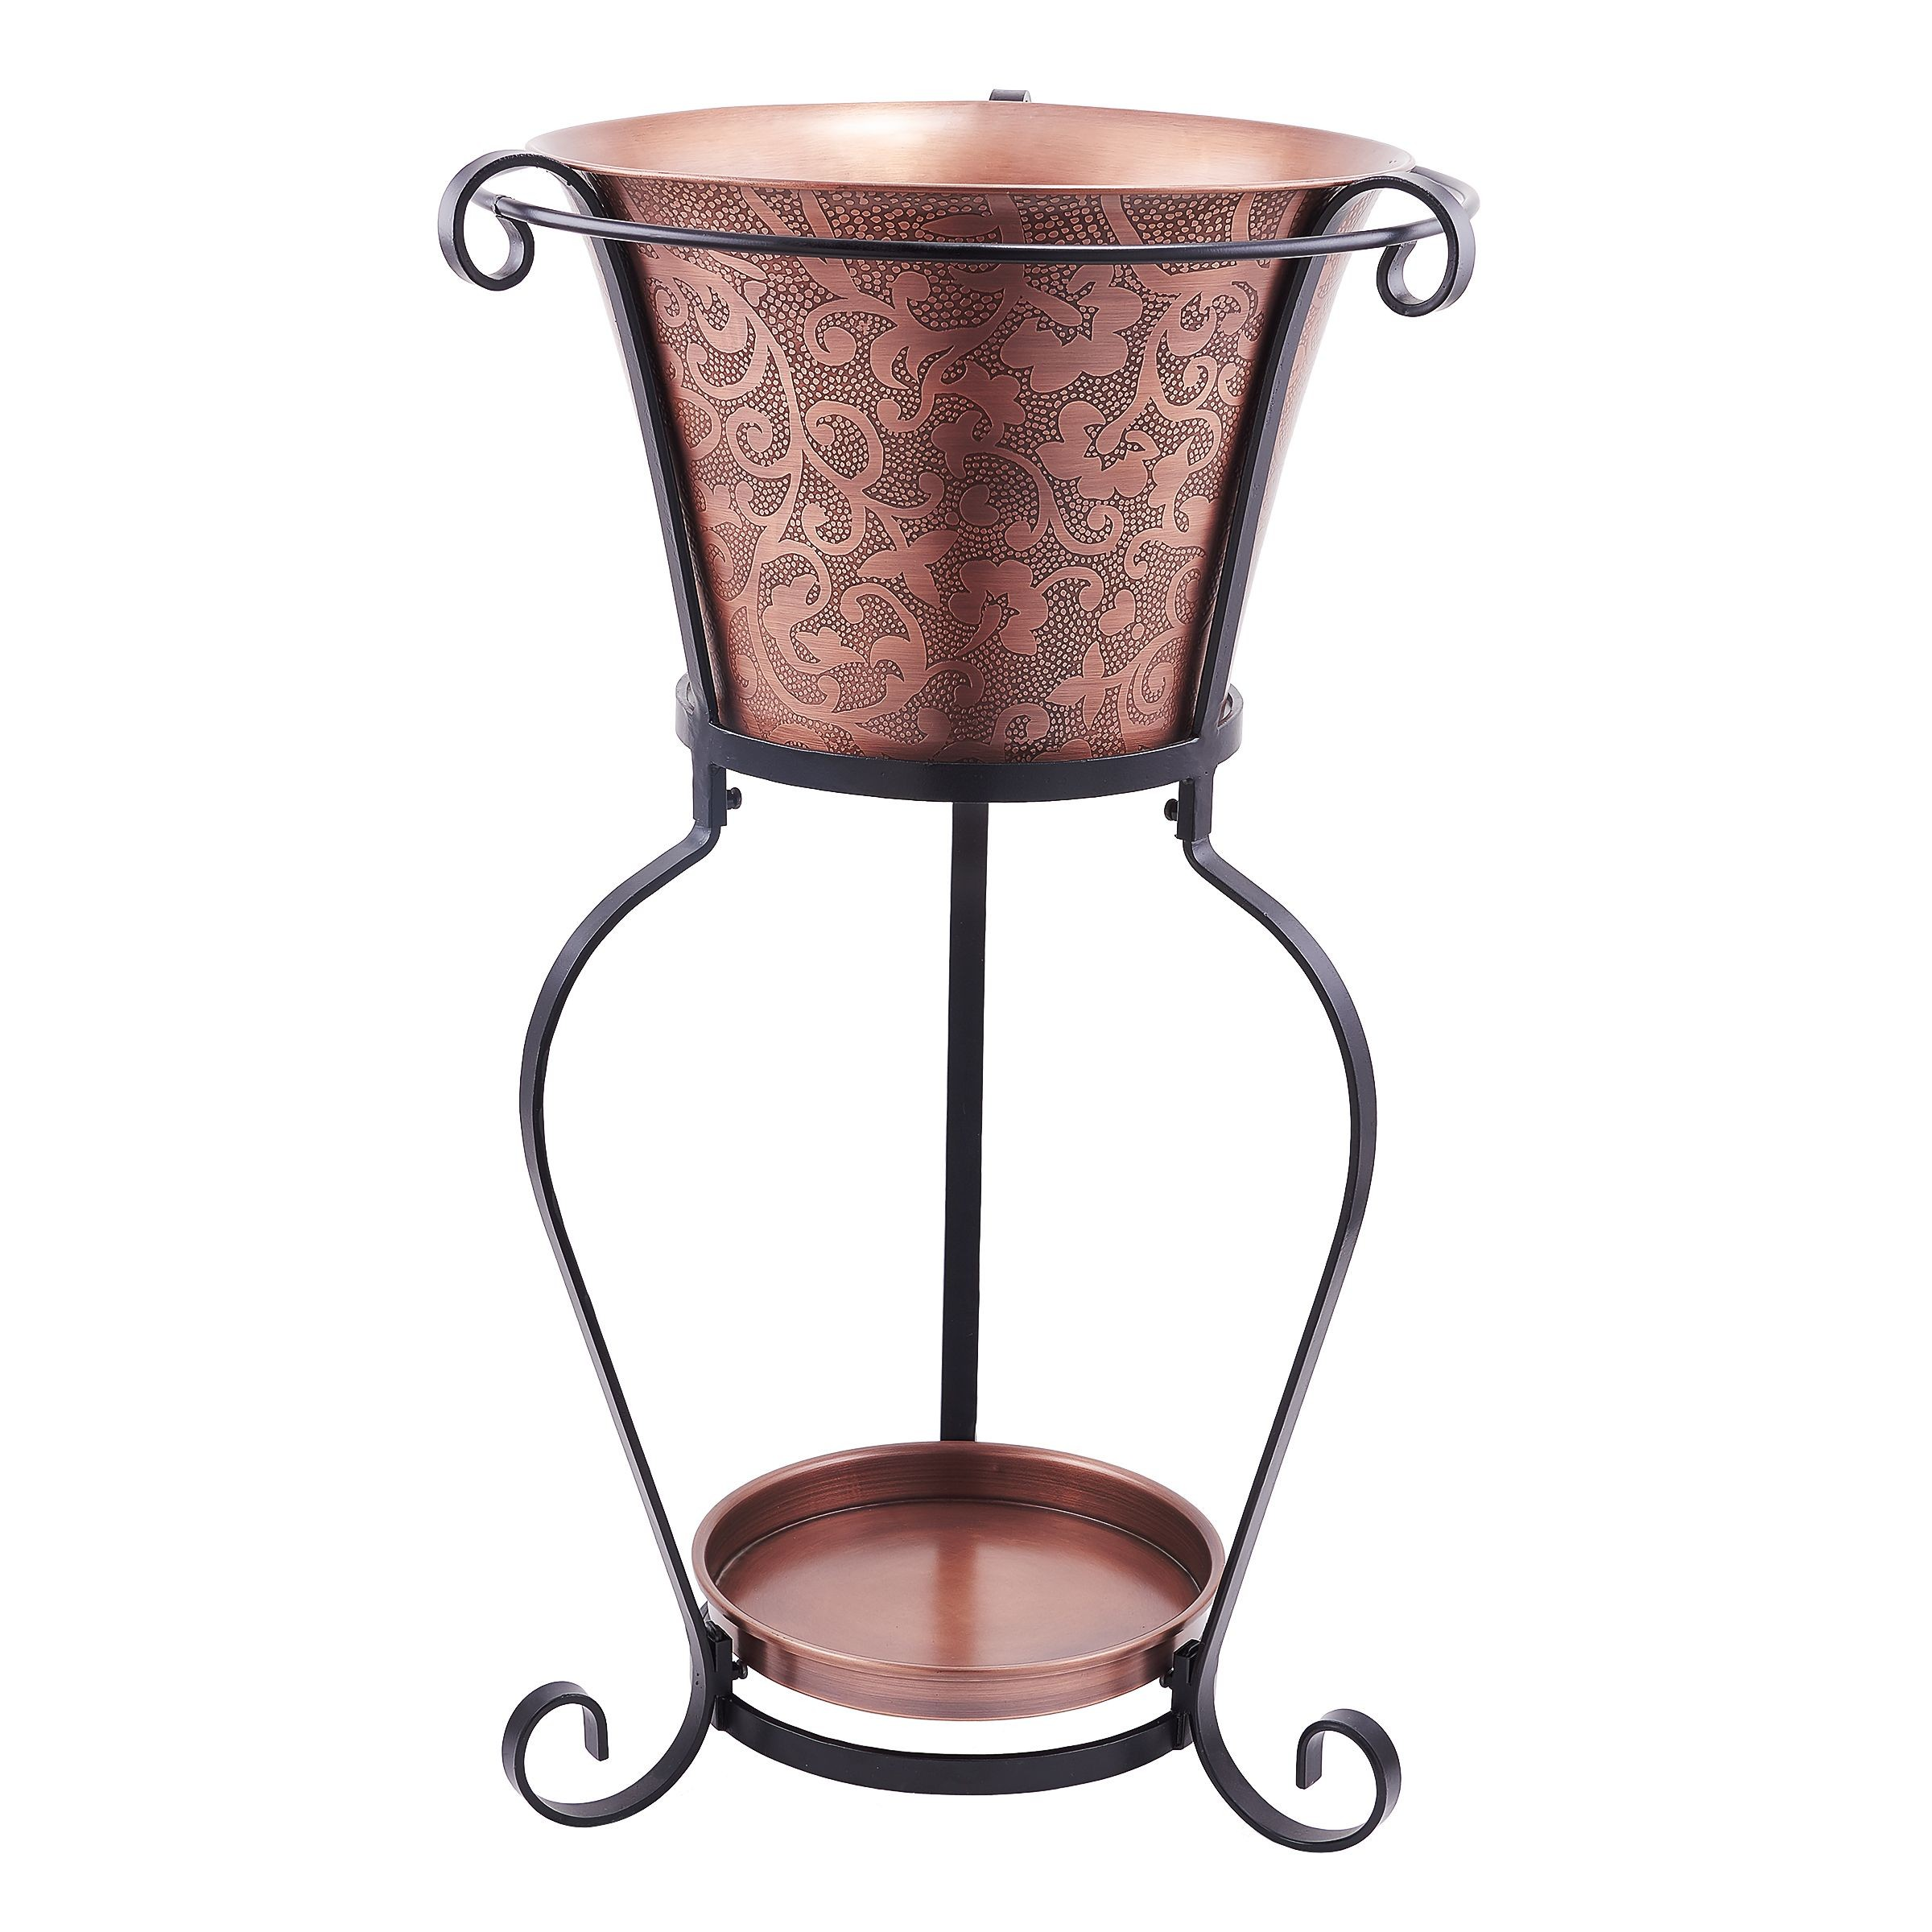 Old Dutch International 9360 Solid Copper Etched Beverage Tub with Stand, 5 Gallon